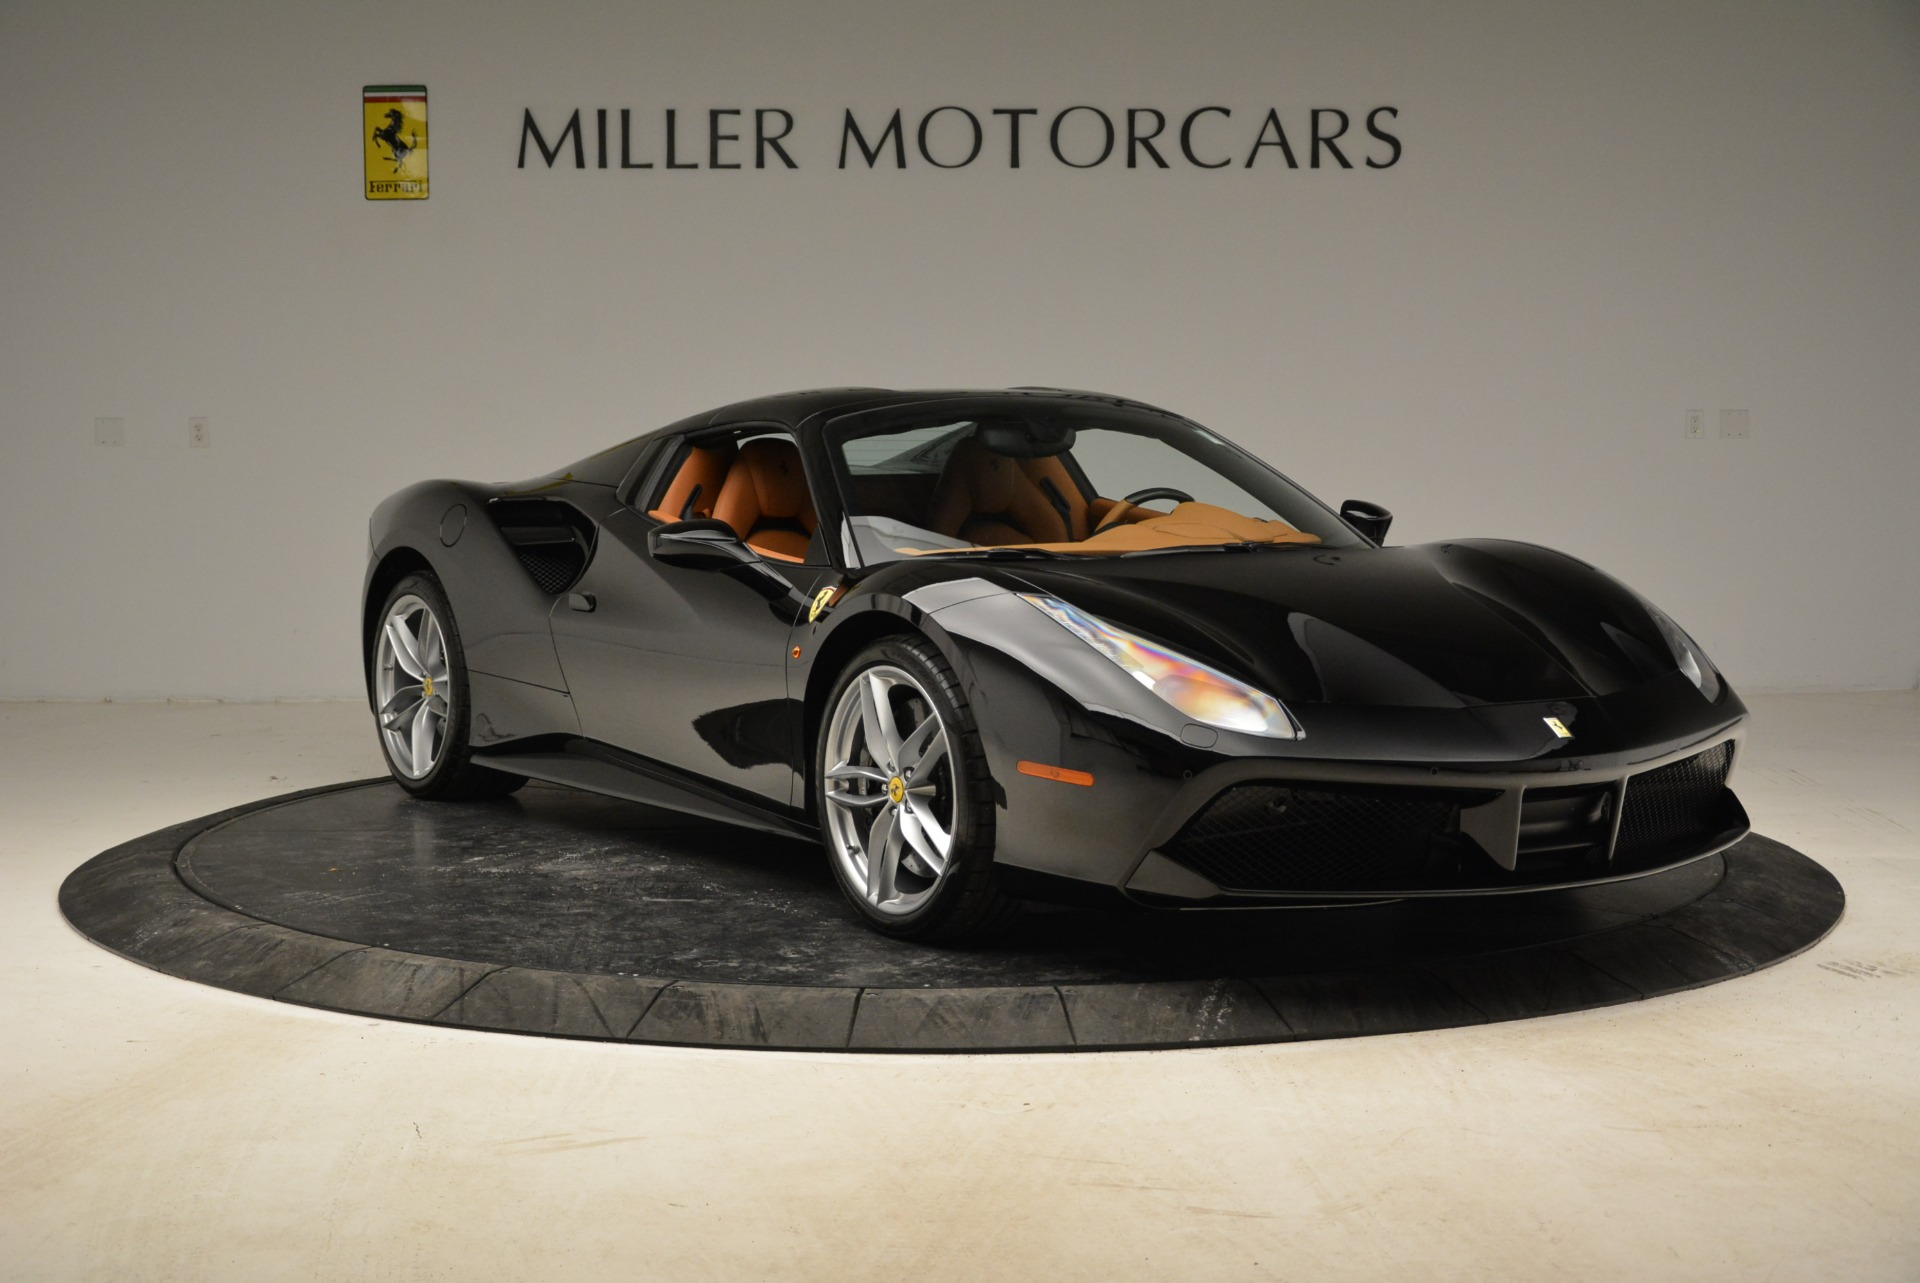 ferrari pinstripe at designs com special with t in car carolbly lease california lovely for